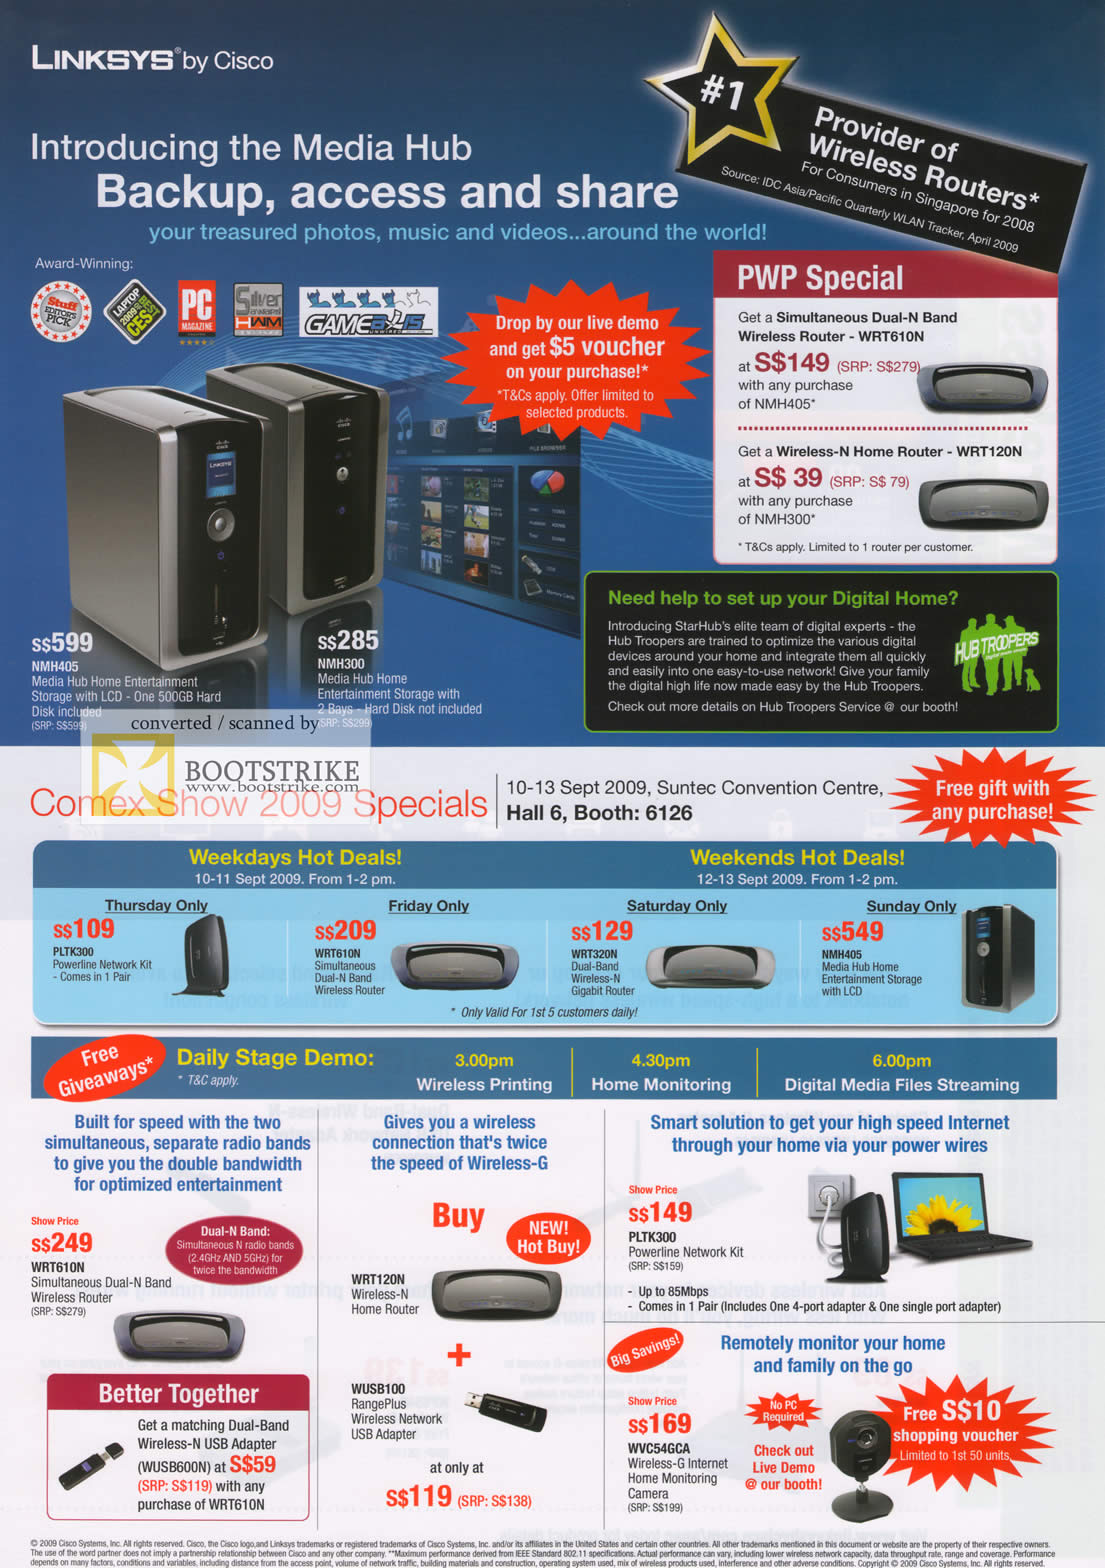 Comex 2009 price list image brochure of Linksys Media Hub Home Monitoring Camera Powerline Network